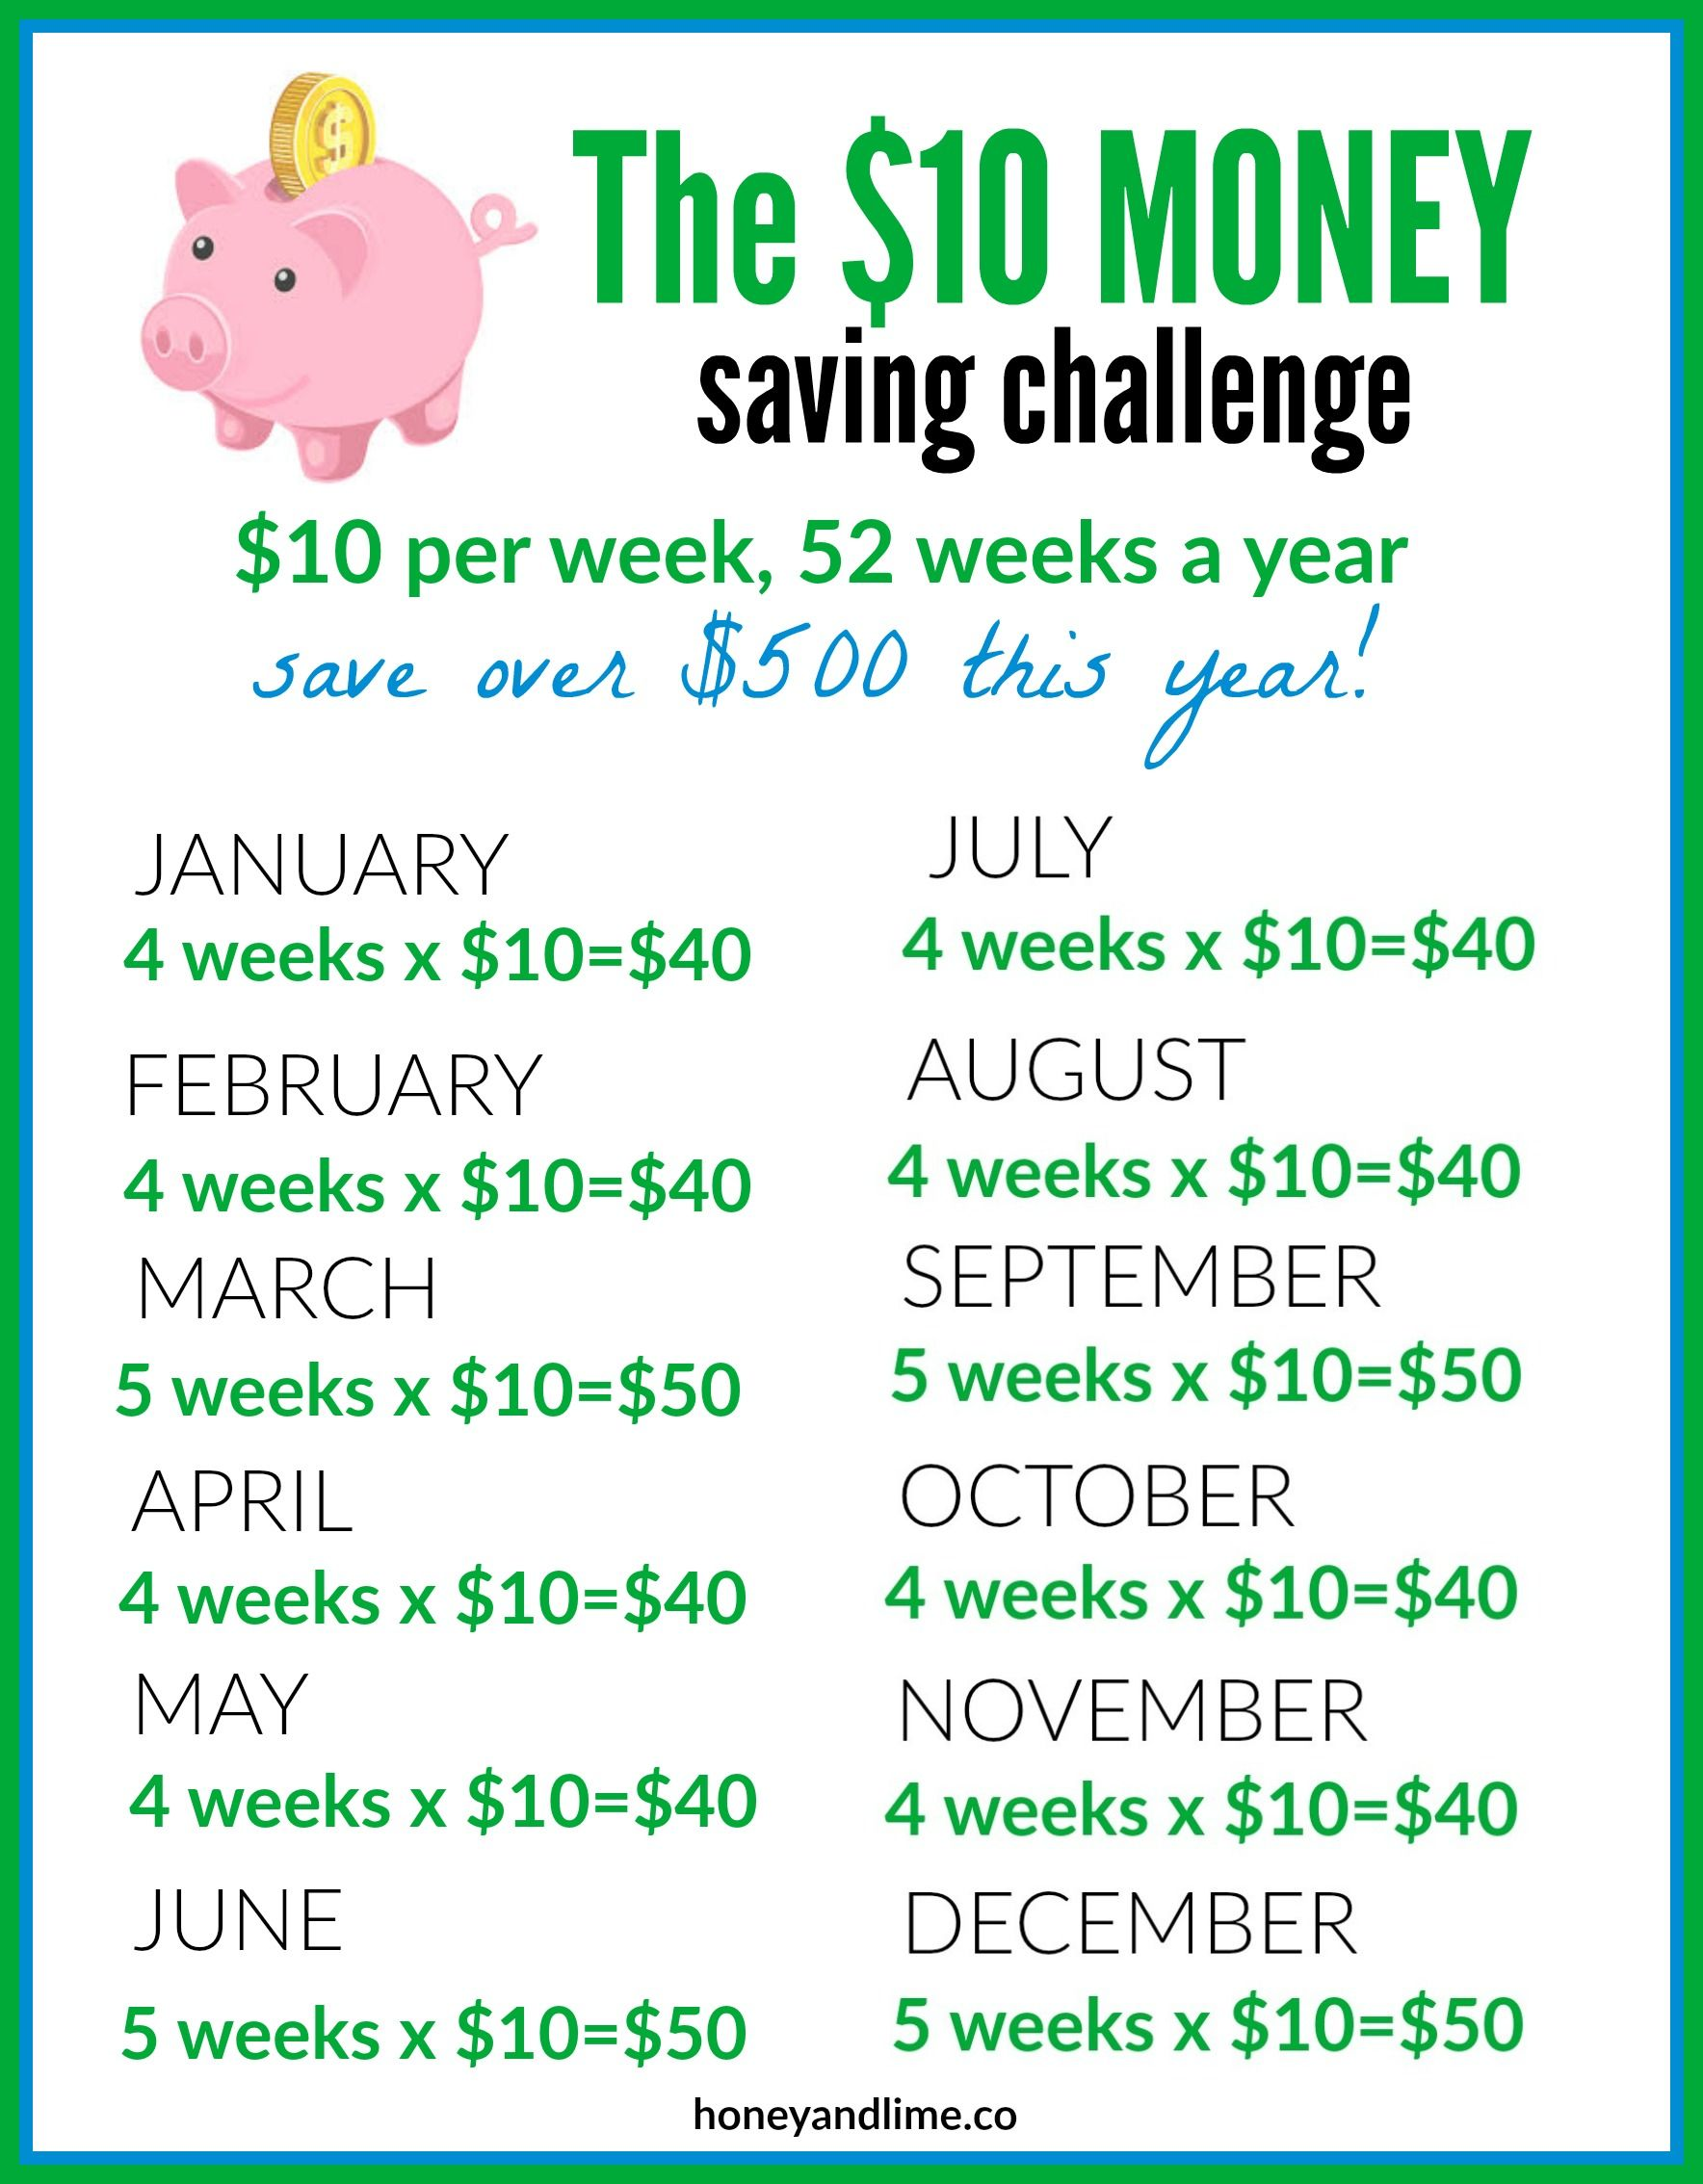 6 Monthly Money Saving Challenges To Try To Start Off The New Year